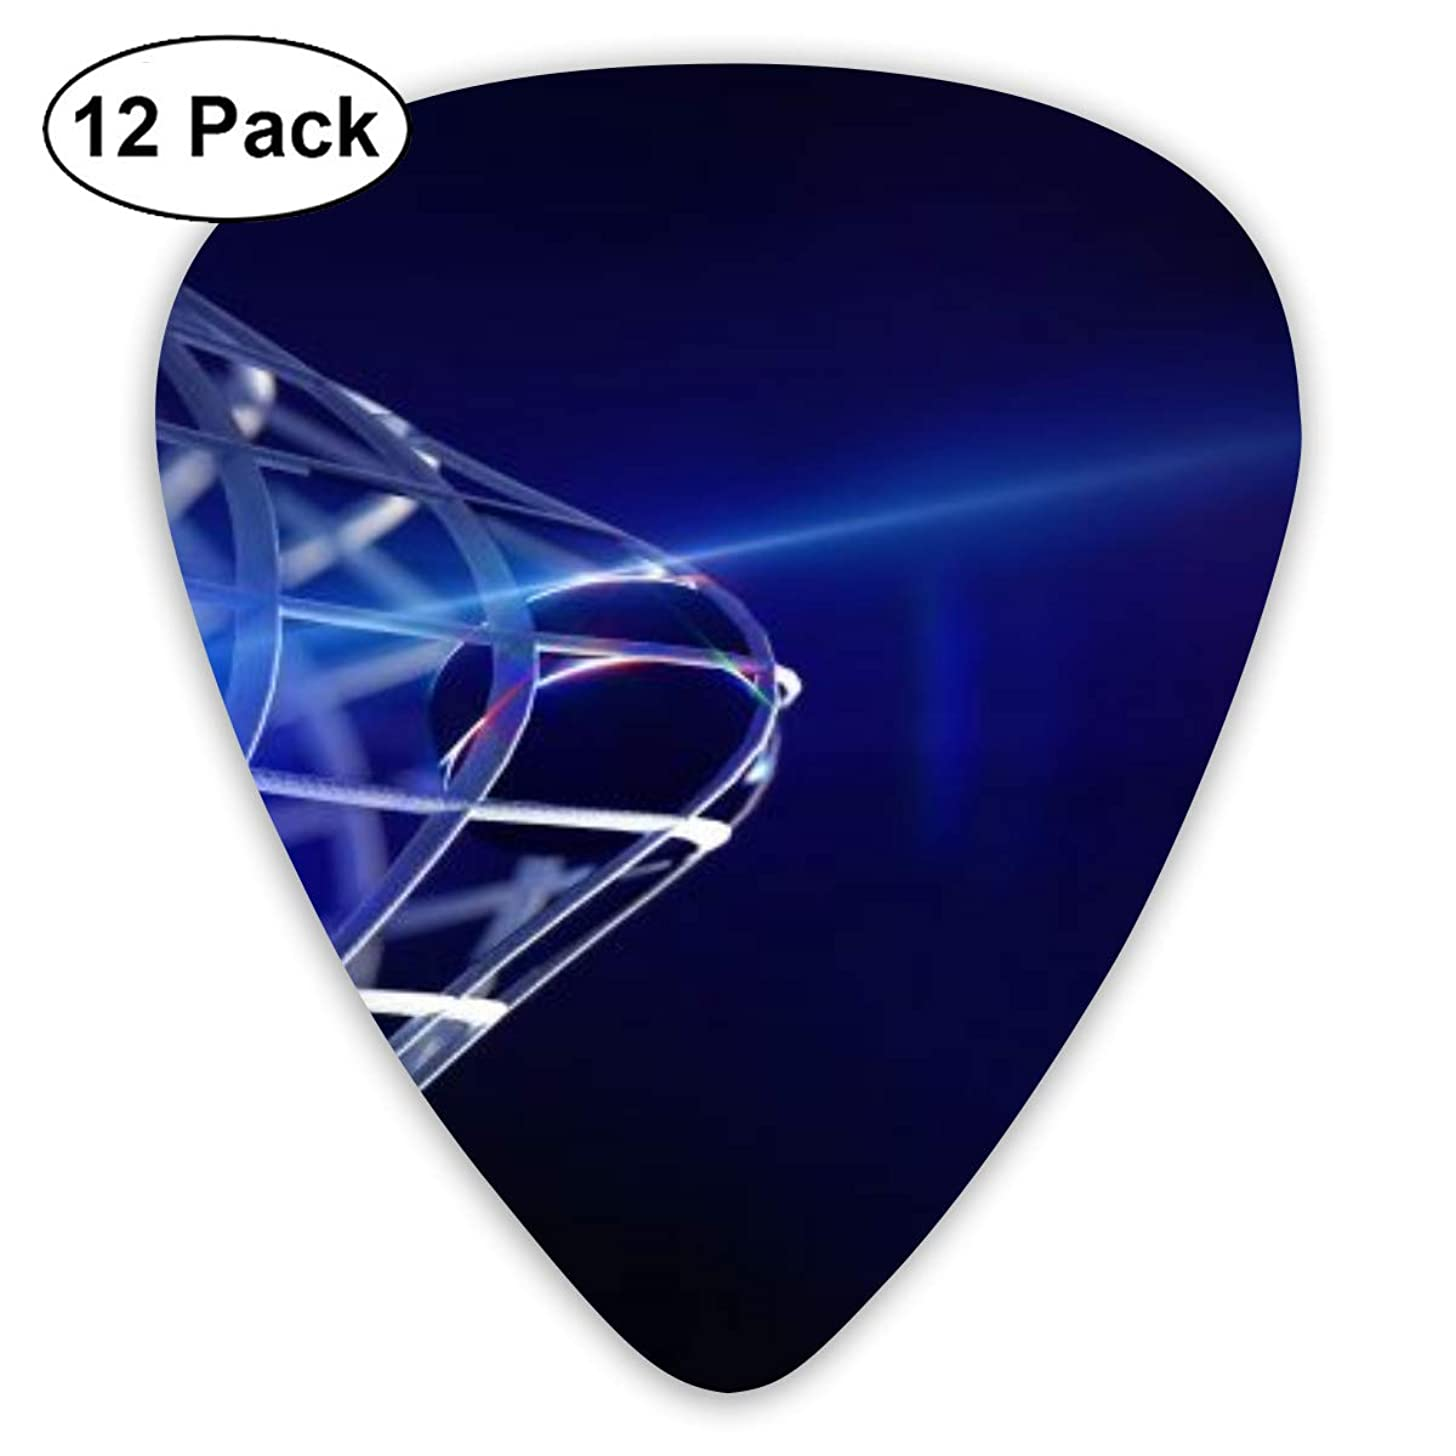 Ice Hockey Net Goal Guitar Picks Universal 351-shaped 0.46mm/ 0.71mm/ 0.96mm ABS Celluloid Plectrum Custom for Electric Acoustic Guitars for Kids Teens Adults Bass Best Stockings Stuffer Gift -12pcs